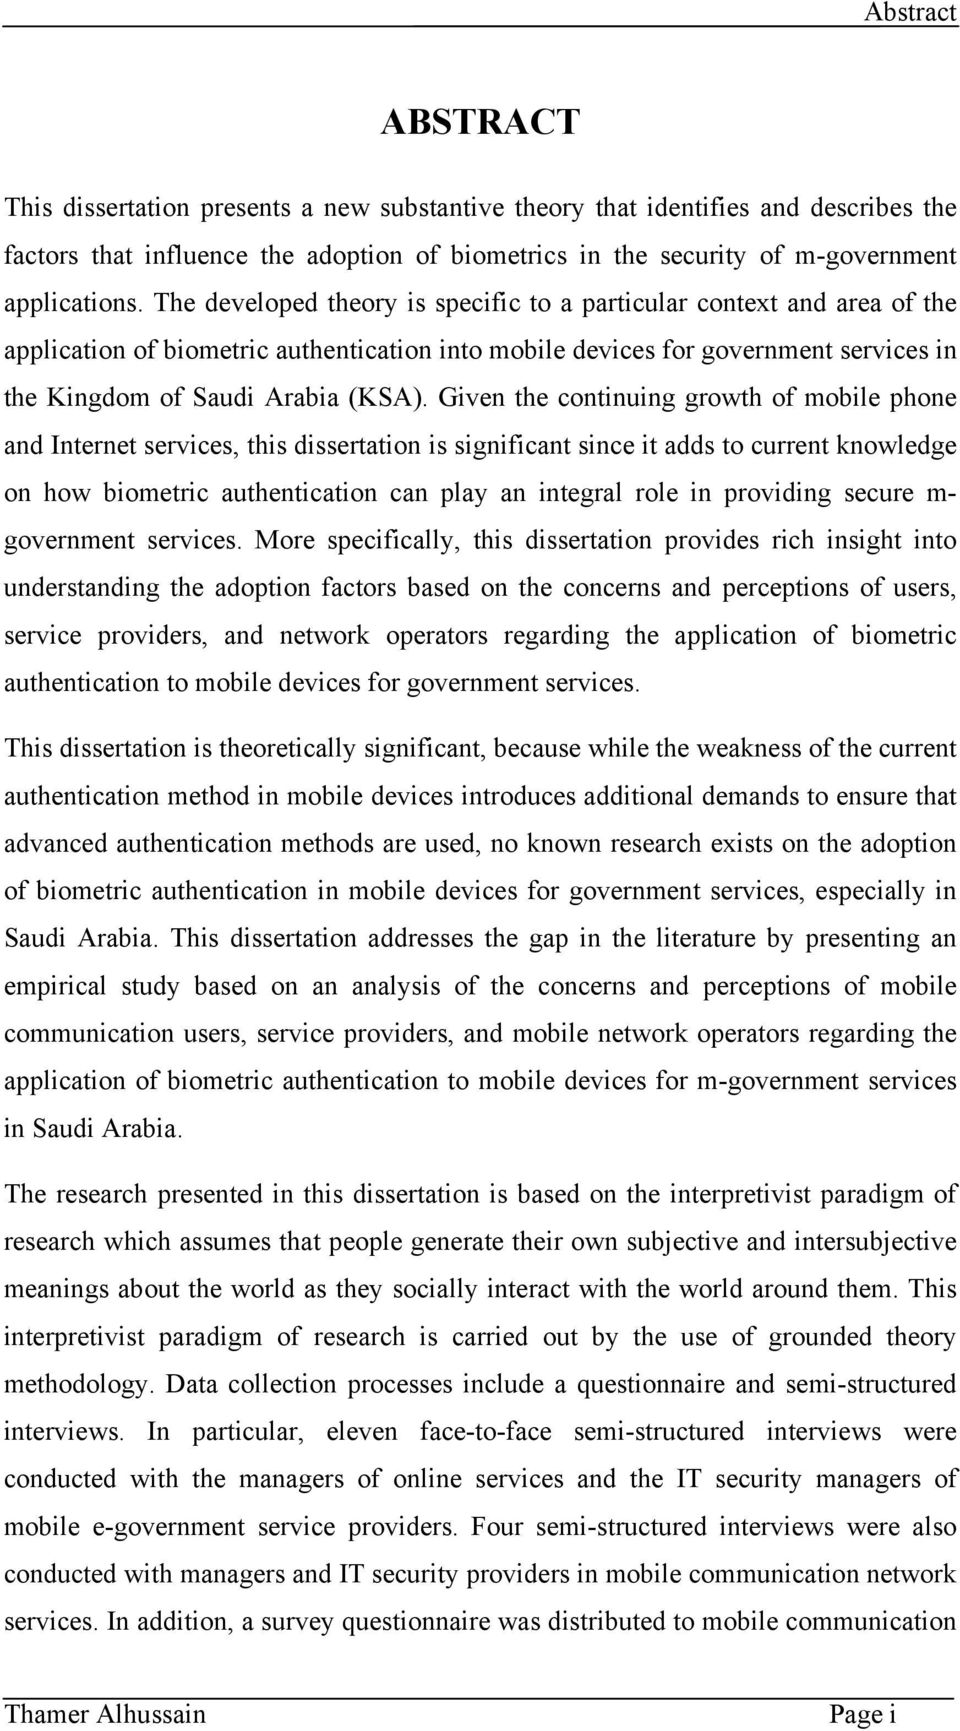 Given the continuing growth of mobile phone and Internet services, this dissertation is significant since it adds to current knowledge on how biometric authentication can play an integral role in